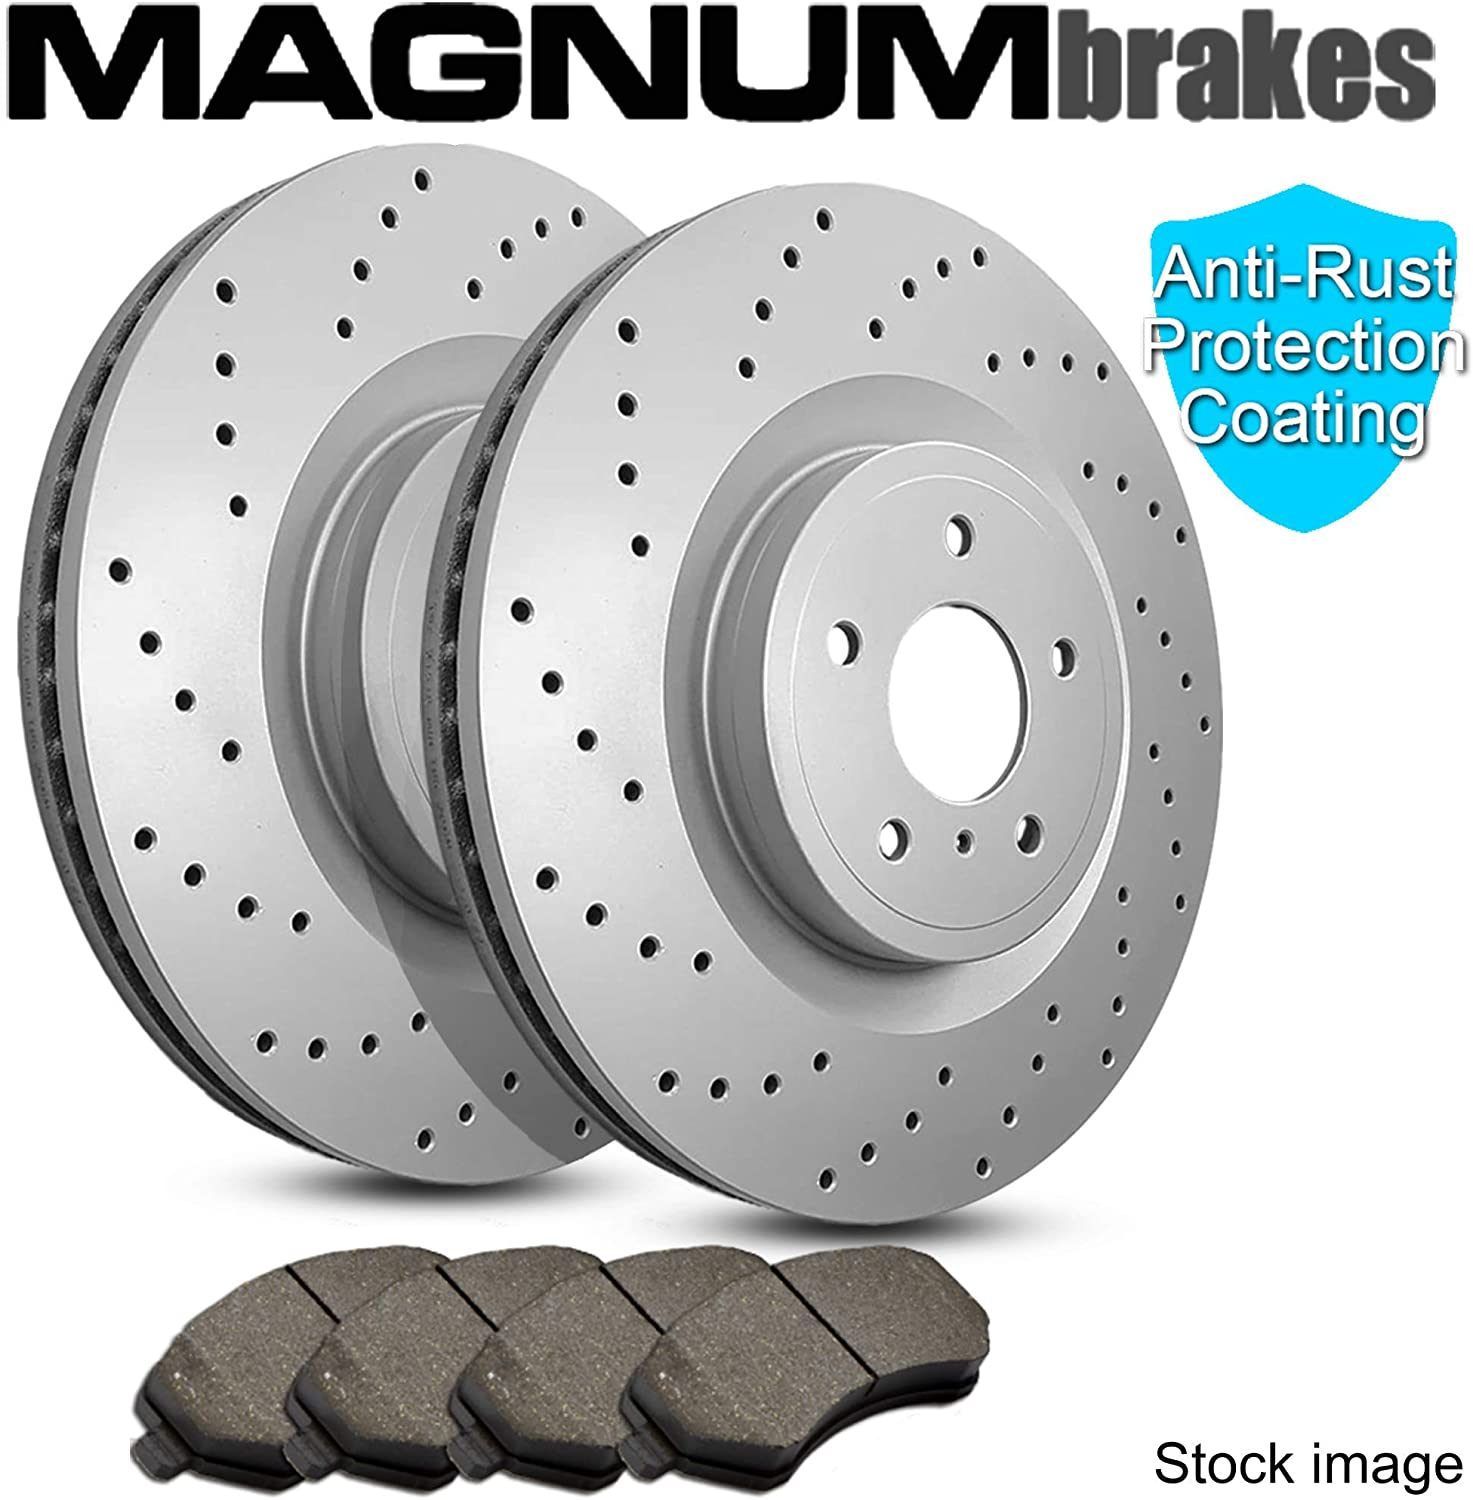 Front MagnumBrakes Cross Drilled Brake Rotors /& Ceramic Brake Pads for 1997-2000 BMW 528i E39